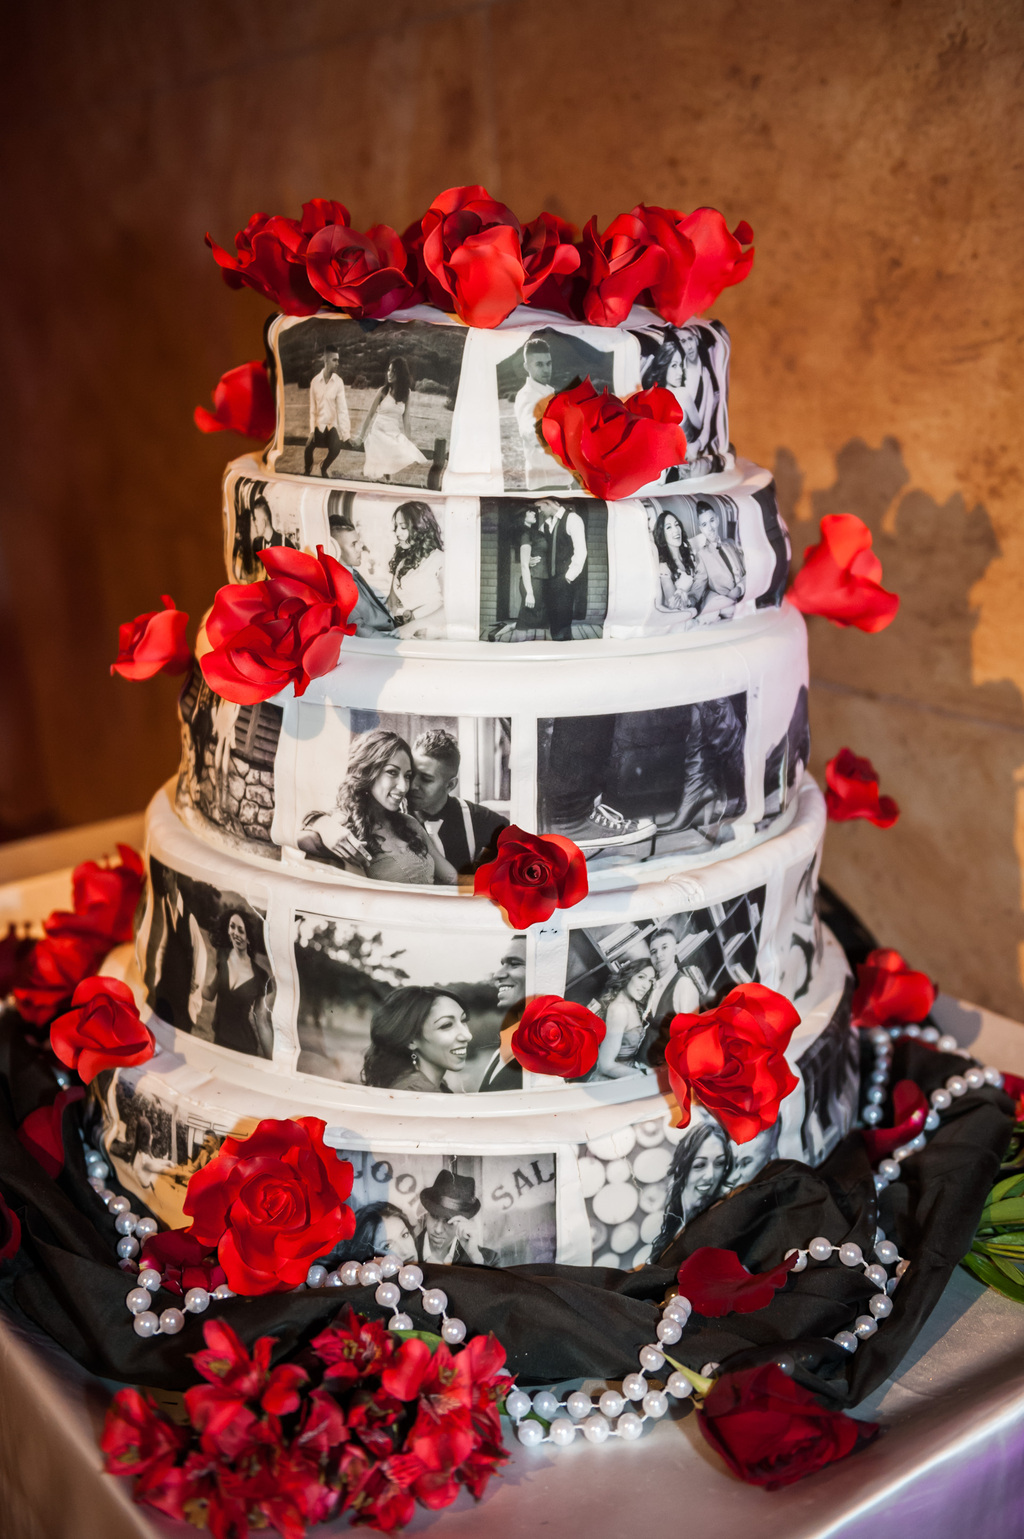 Epic-wedding-in-los-angeles-california-weddings-black-white-red-cake.full